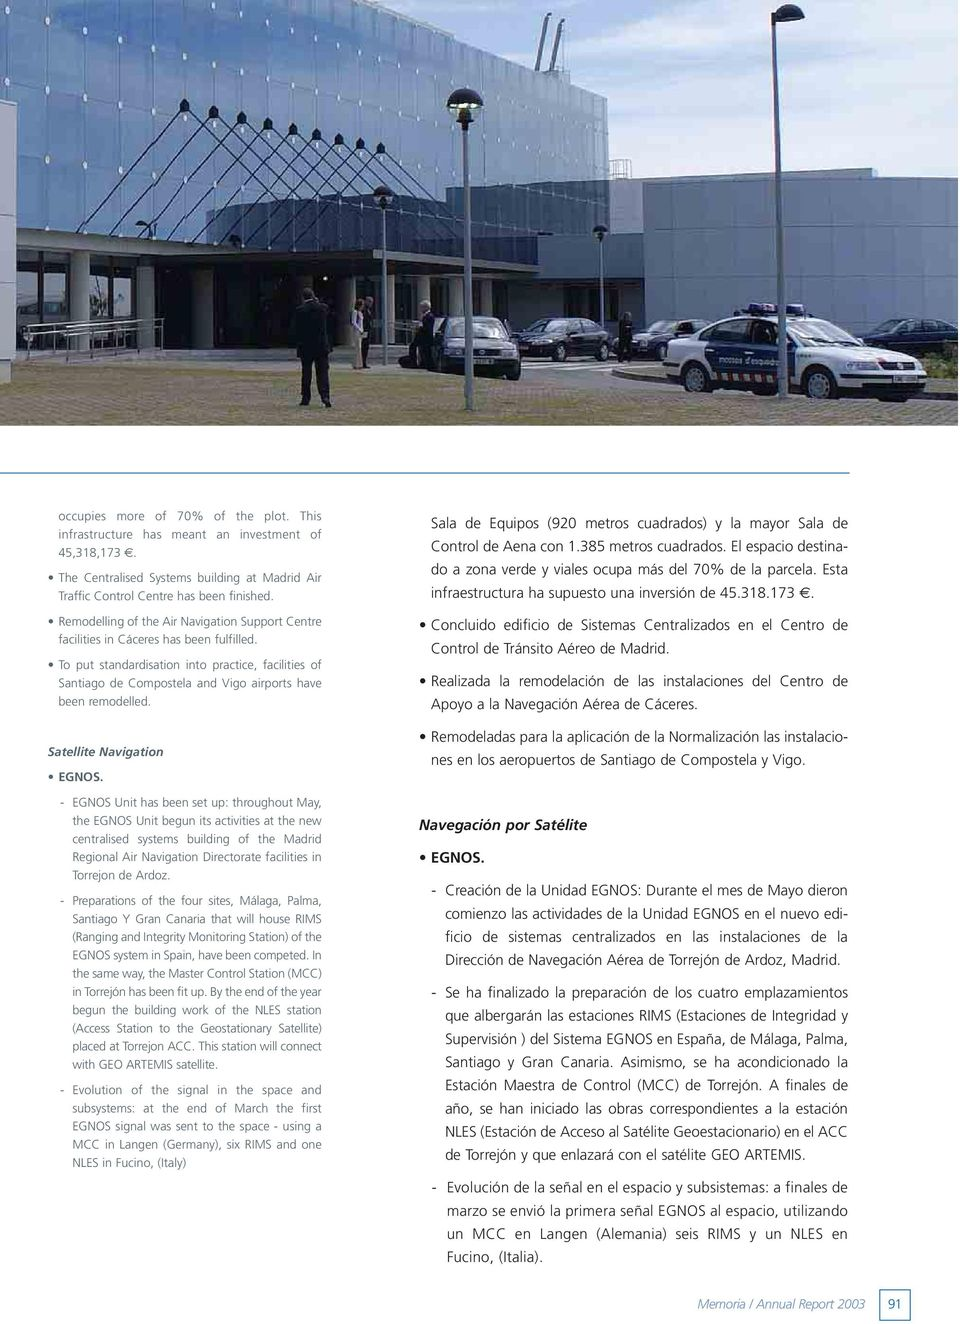 To put standardisation into practice, facilities of Santiago de Compostela and Vigo airports have been remodelled. Satellite Navigation EGNOS.